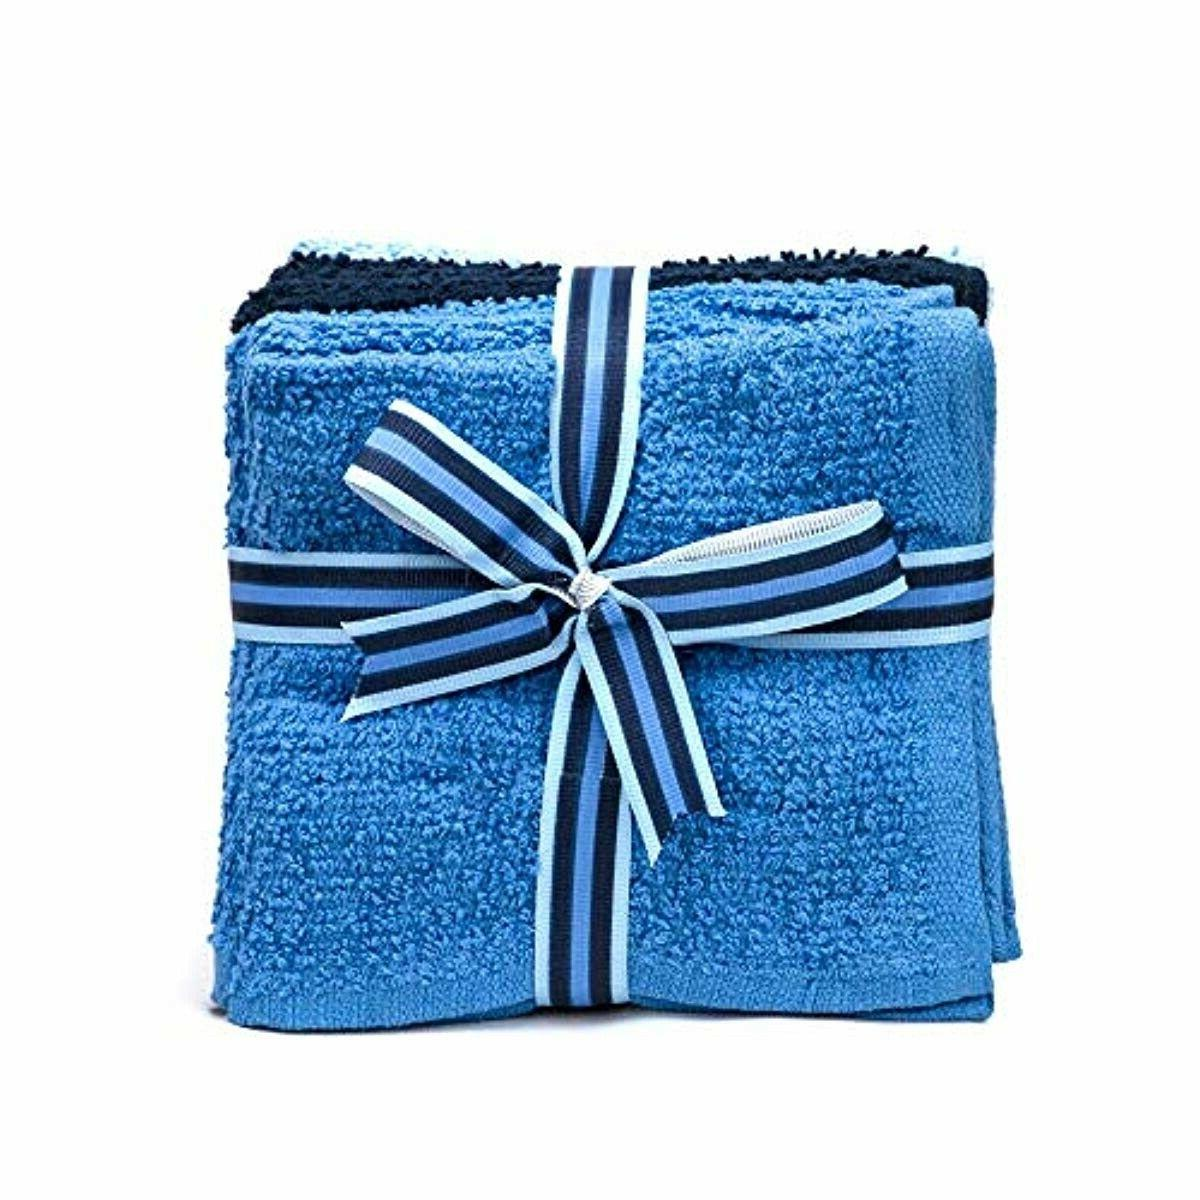 8 Pack Kitchen Towels, 100% Cotton Cloth, Soft, inch